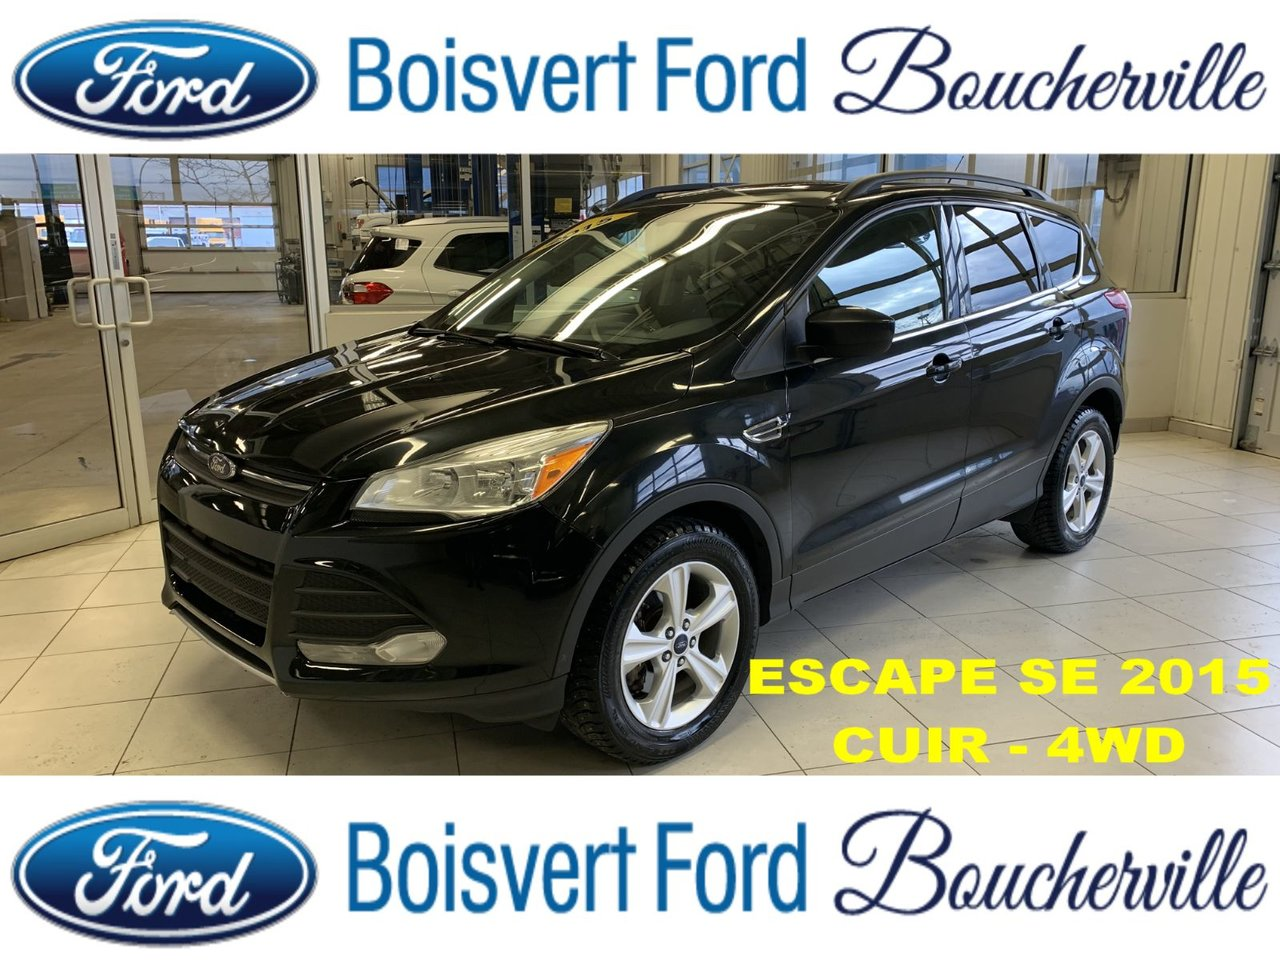 2015 Ford Escape SE 4WD CUIR